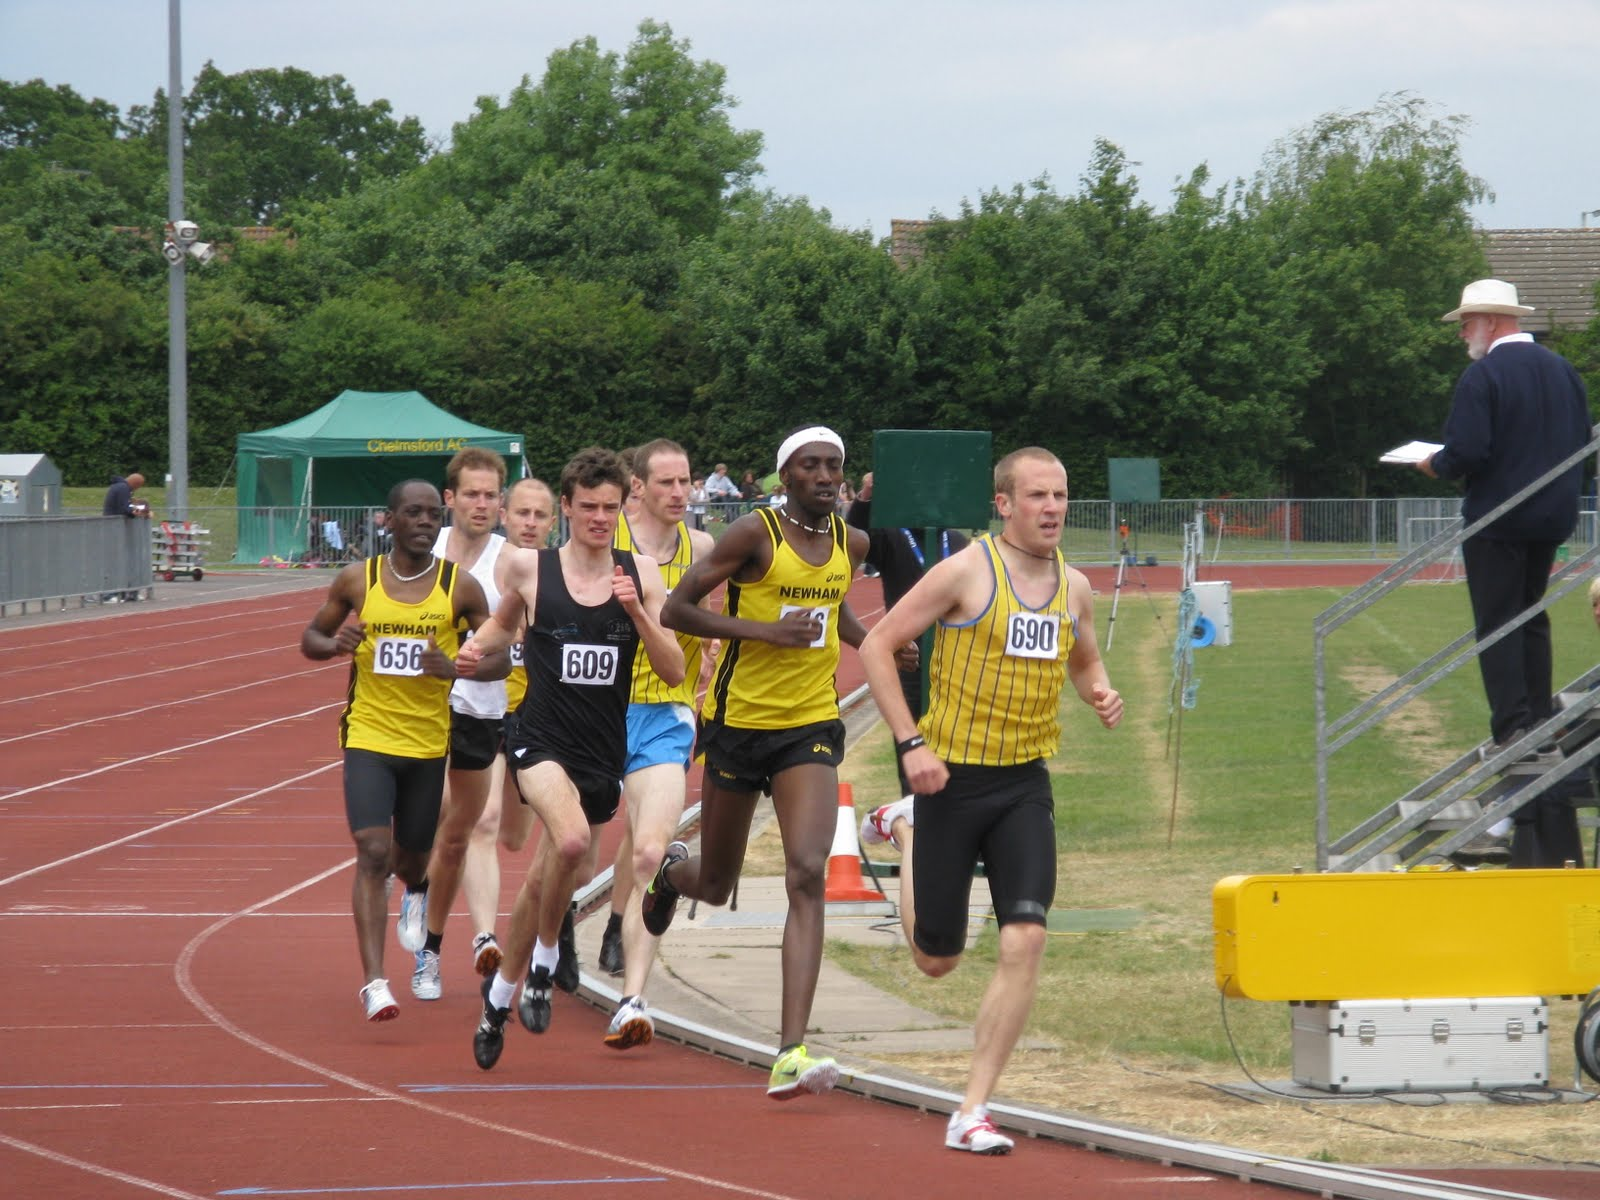 Colchester & Tendring Athletics Club: Essex Track & Field Champs 2011 ...